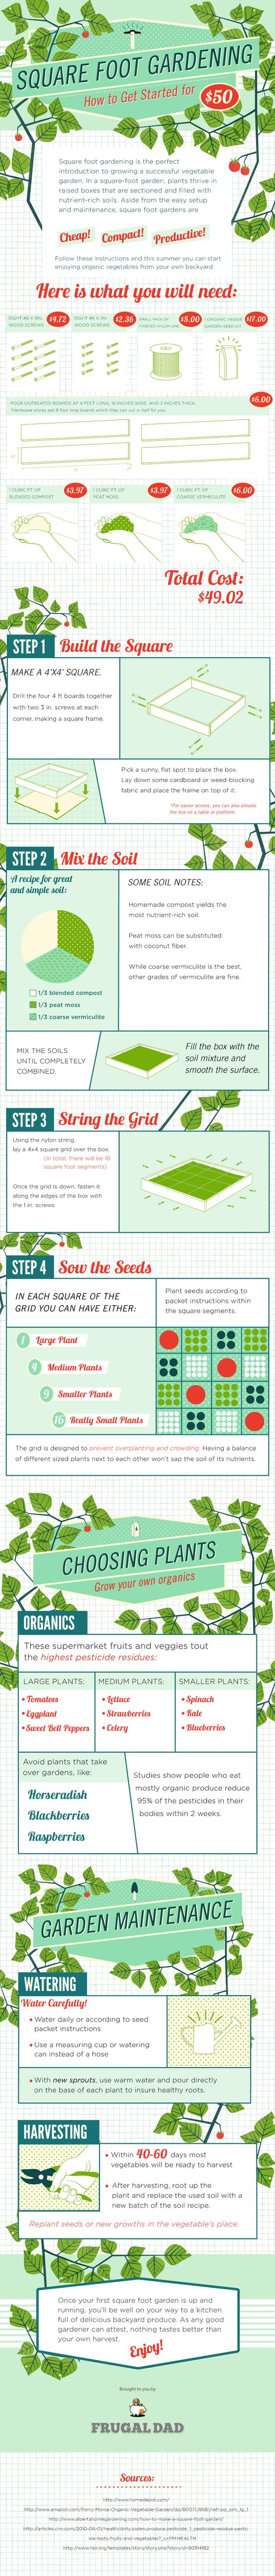 Grow your own! Great info graphic. You can even square food garden on your balcony.